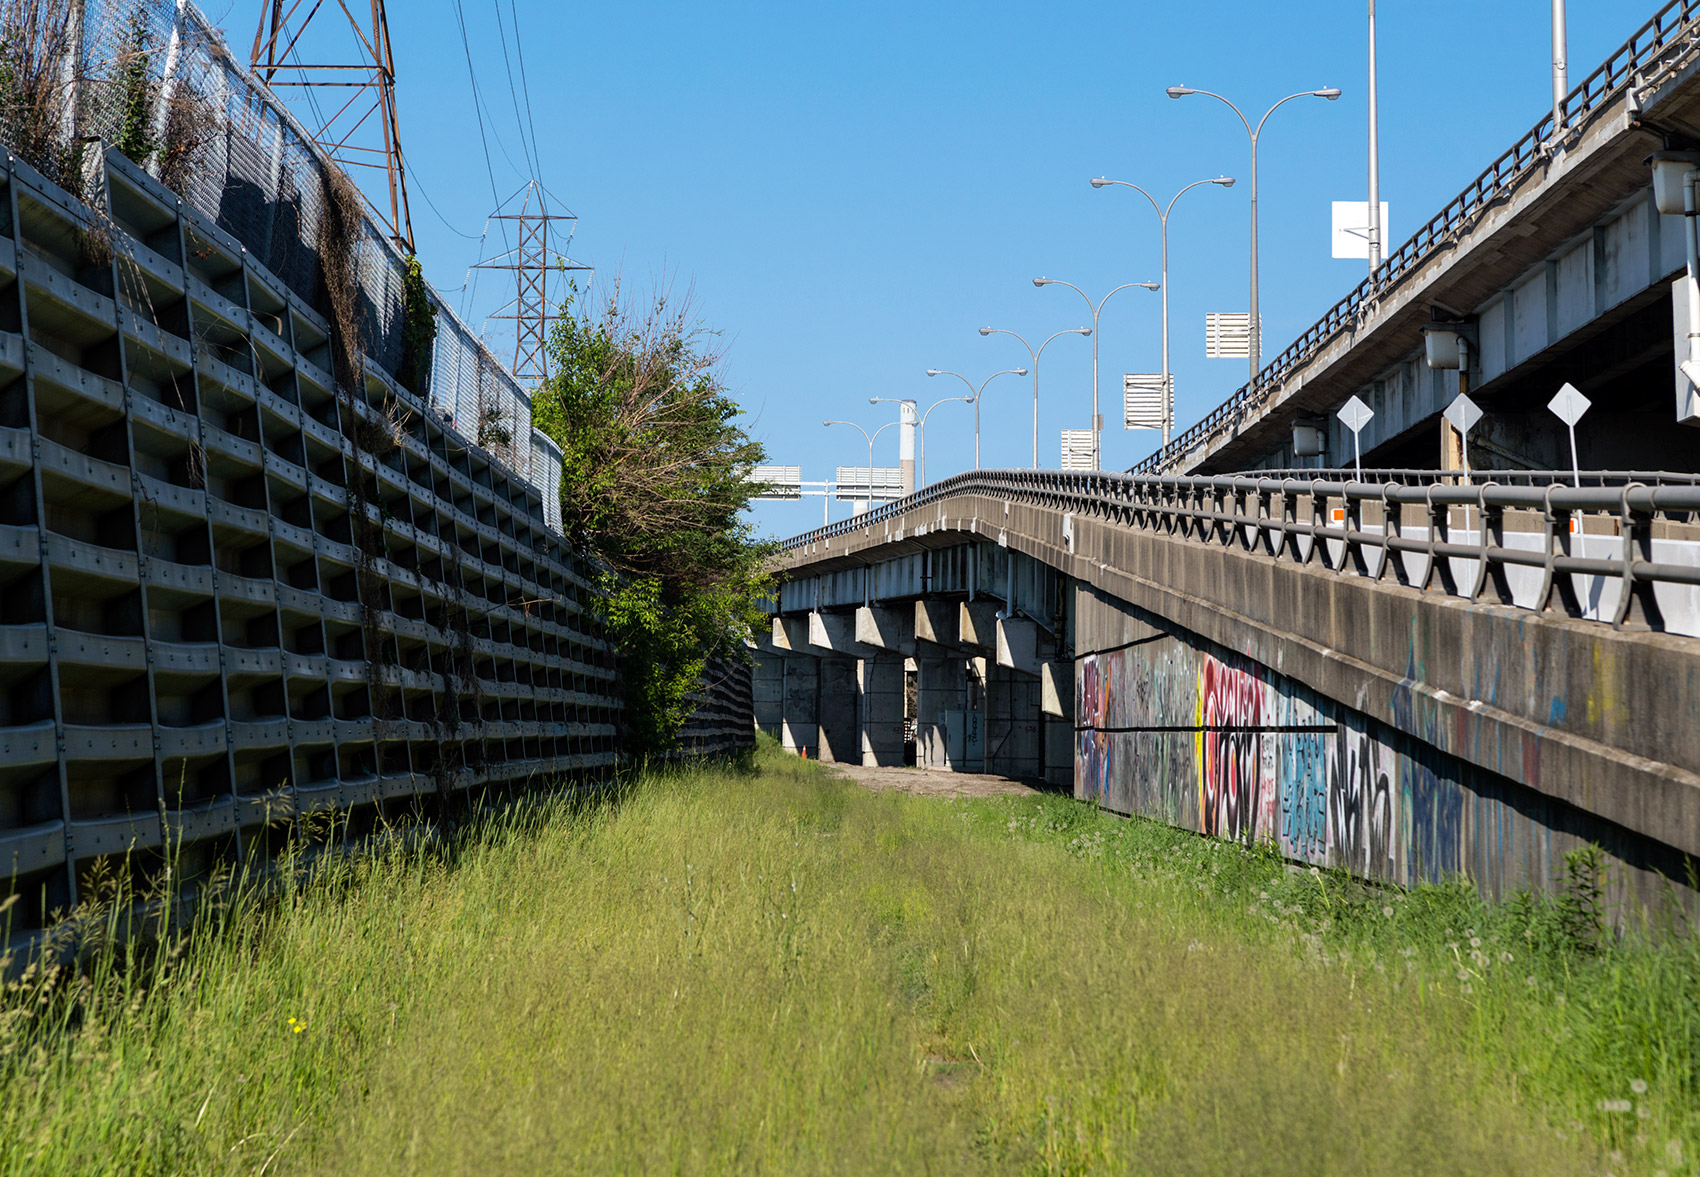 20150609. As is, there's a lot of unused land around Toronto's G